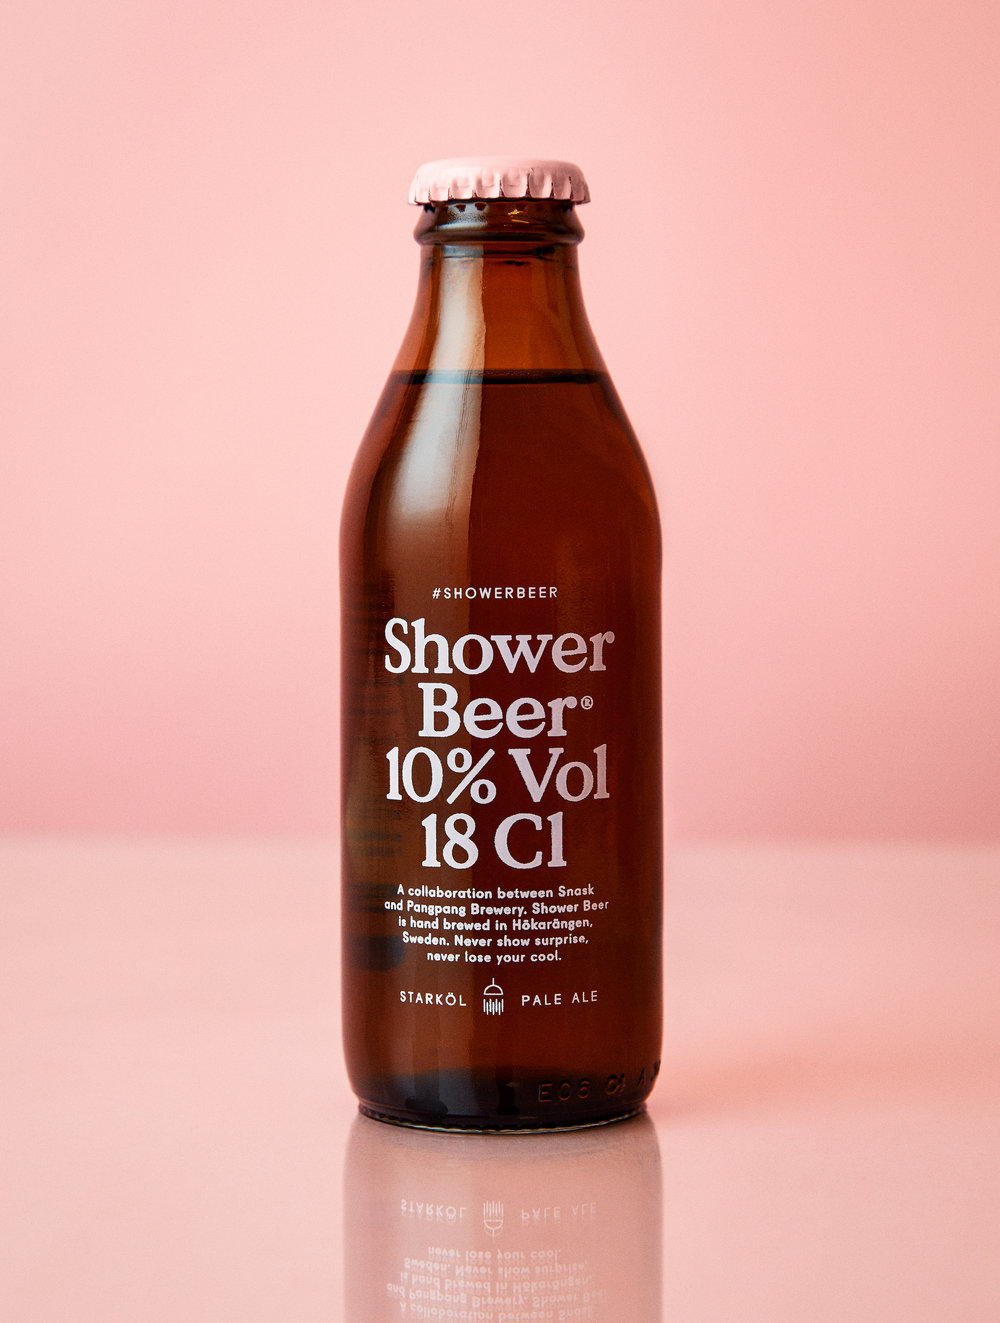 shower-beer_02_full-bottle.jpg